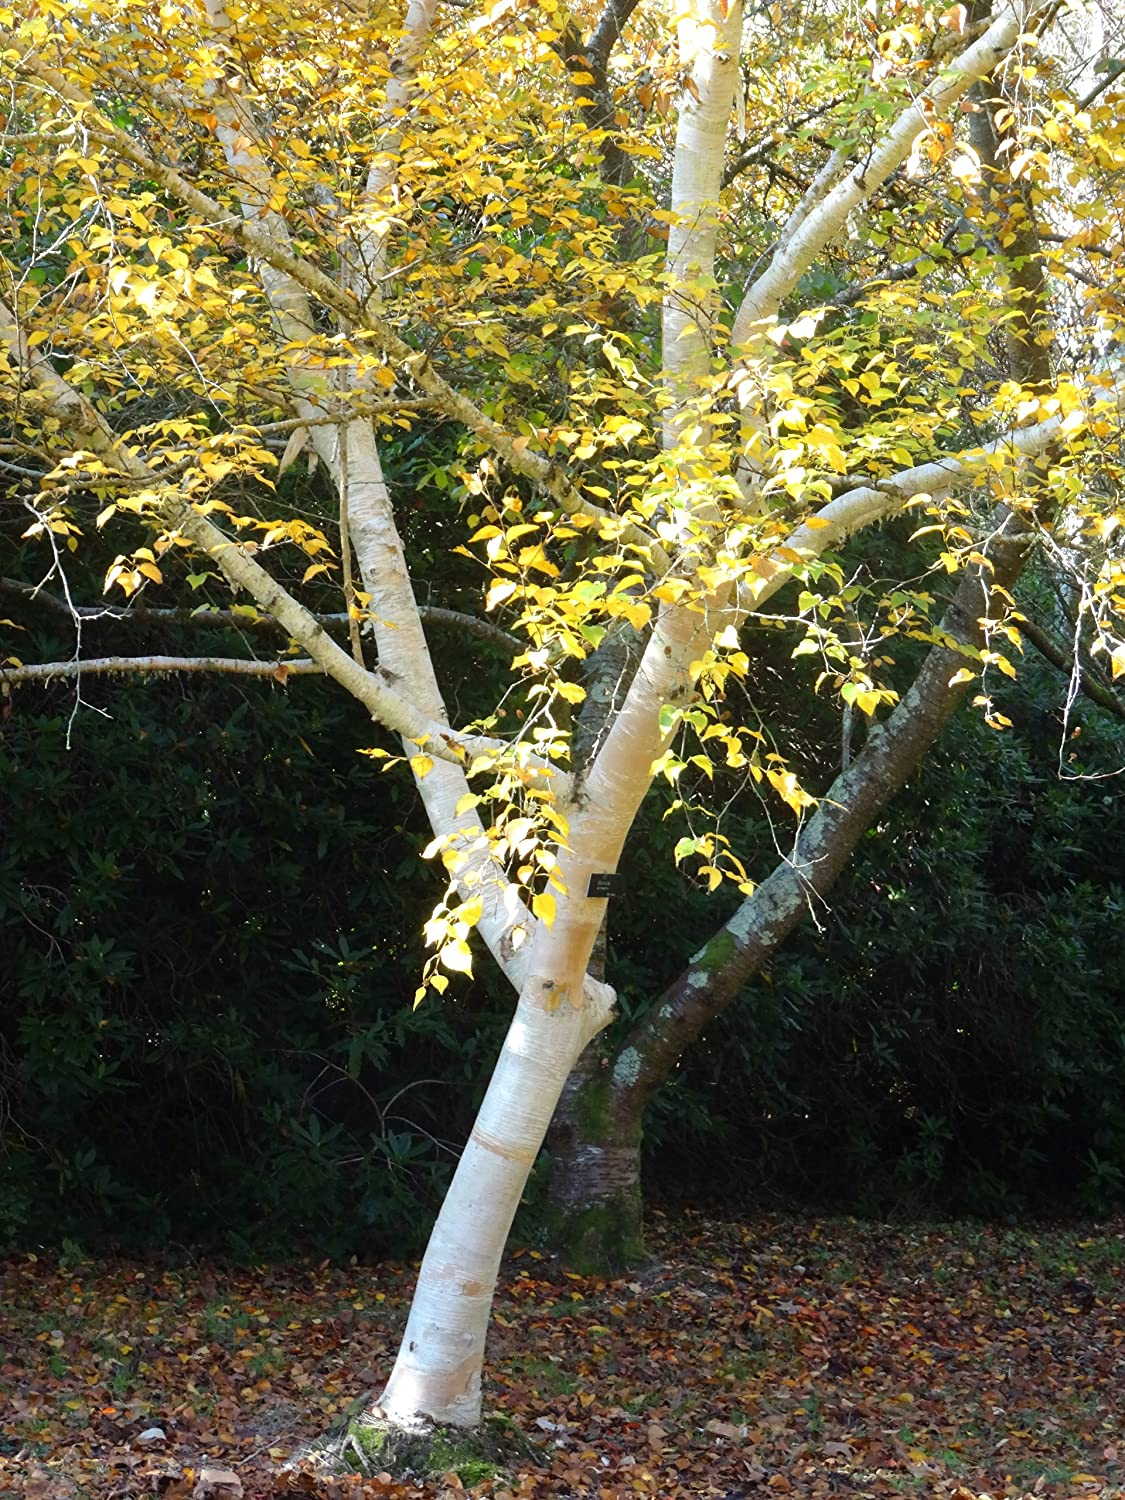 1 Silver Birch Jacquemontii 4-5ft Tall In 2L Pot Stunning Tree, Himalyan White Birch, Betula 3fatpigs® beechwoodtrees 3fatpigs®